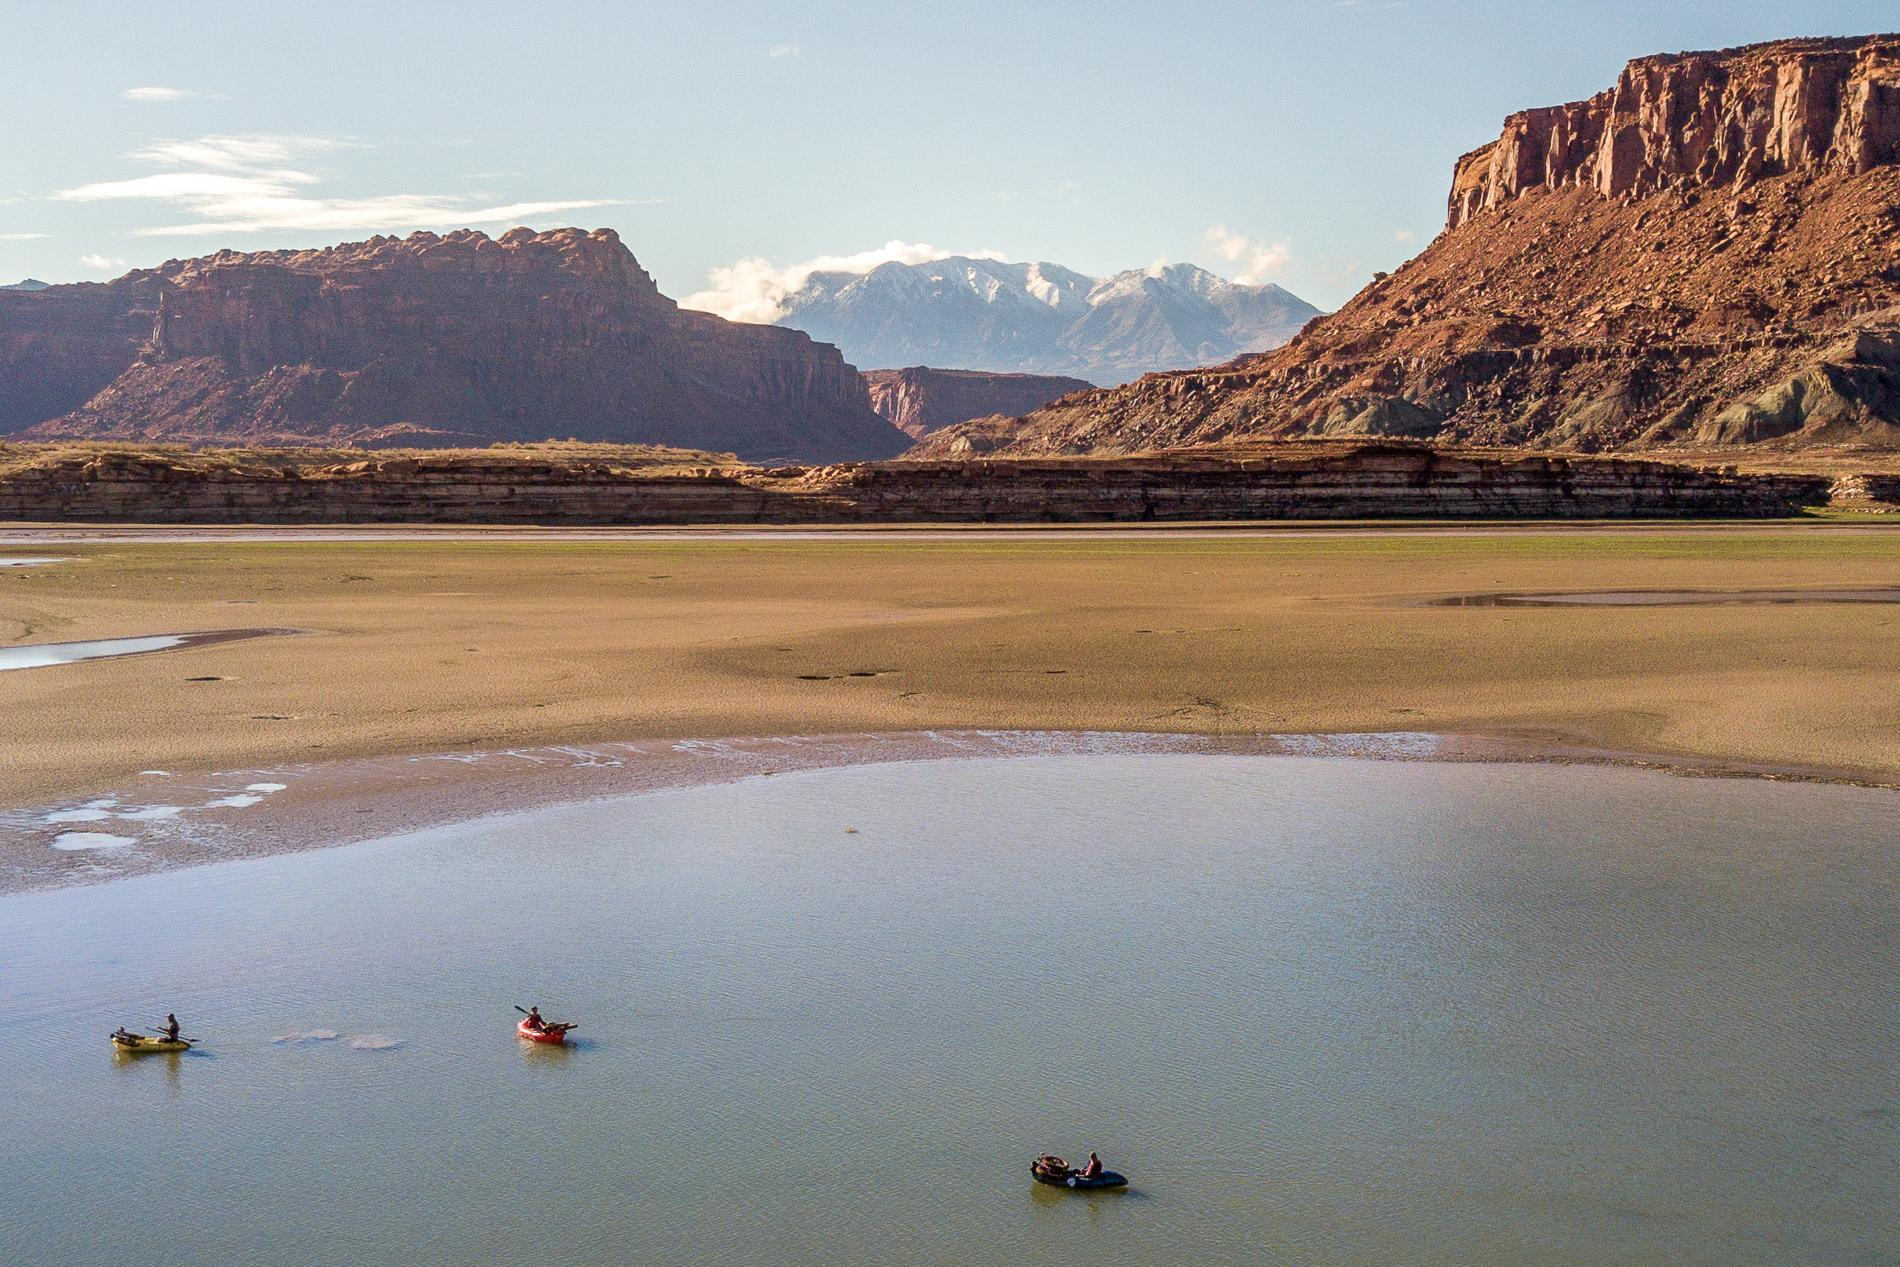 Quicksand, Camaraderie, and Existential Optimism in Canyon Country